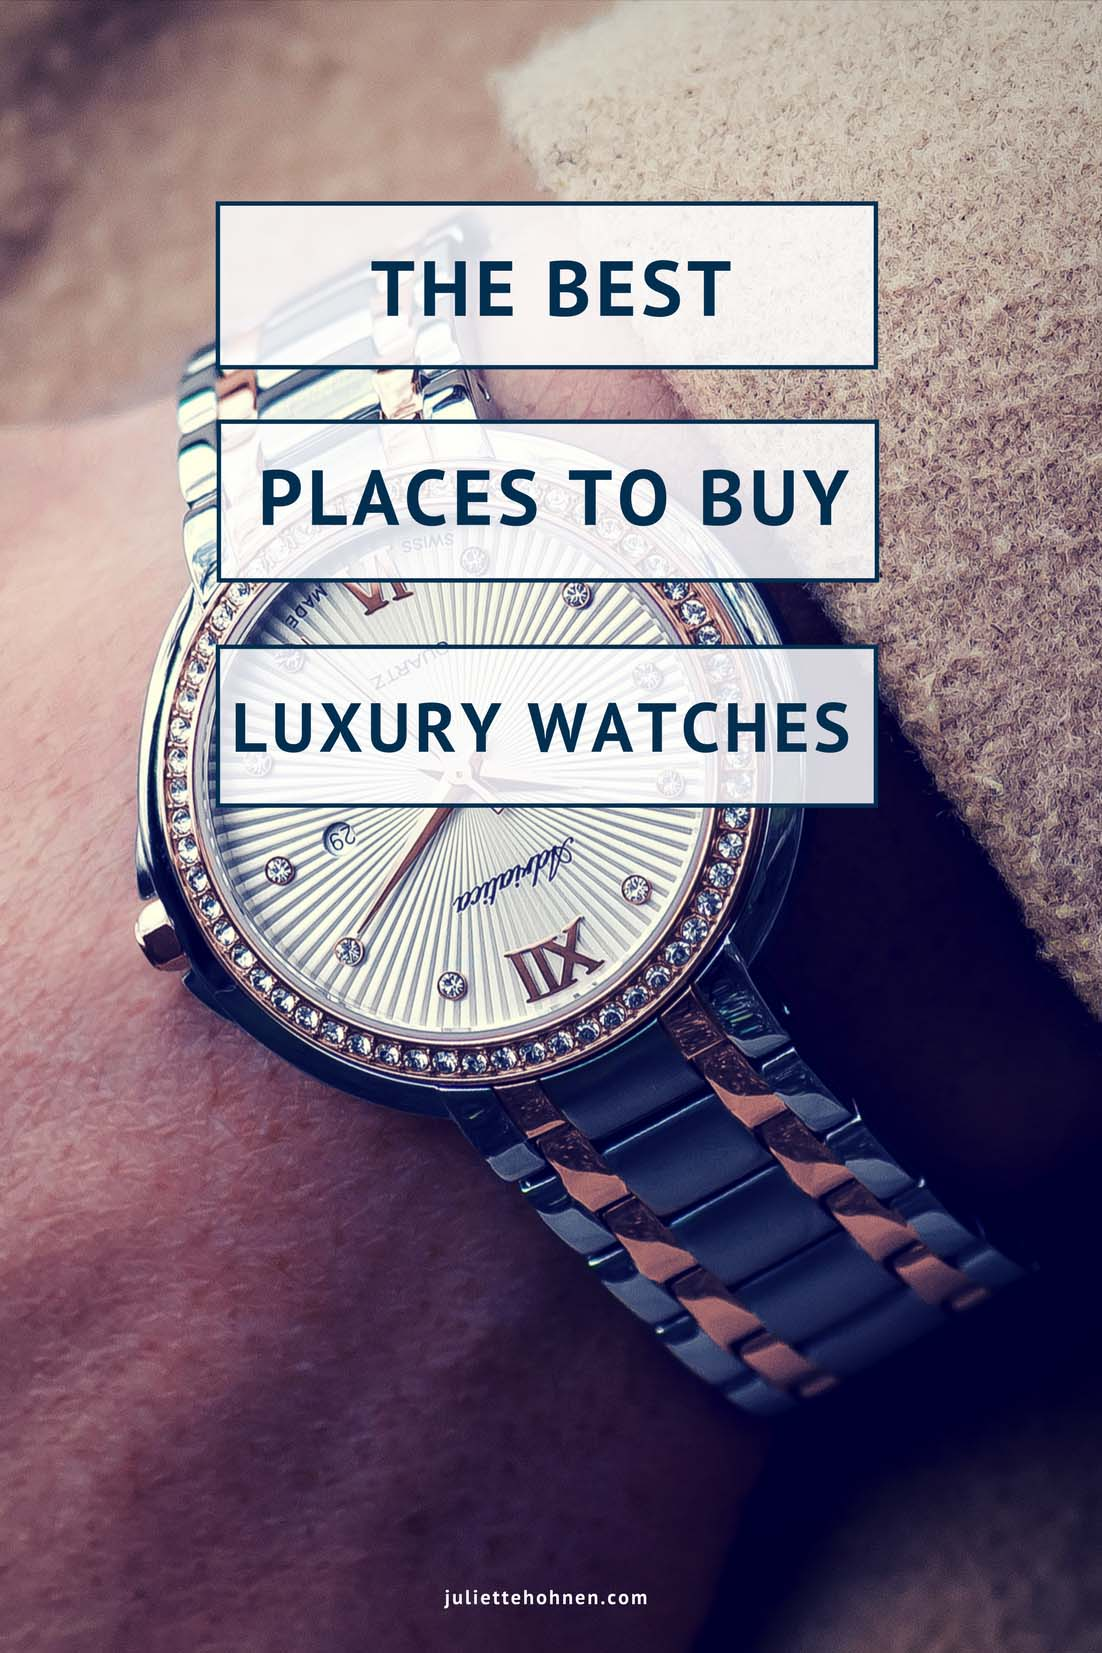 Gift Ideas: The Best Places to Buy Luxury Watches